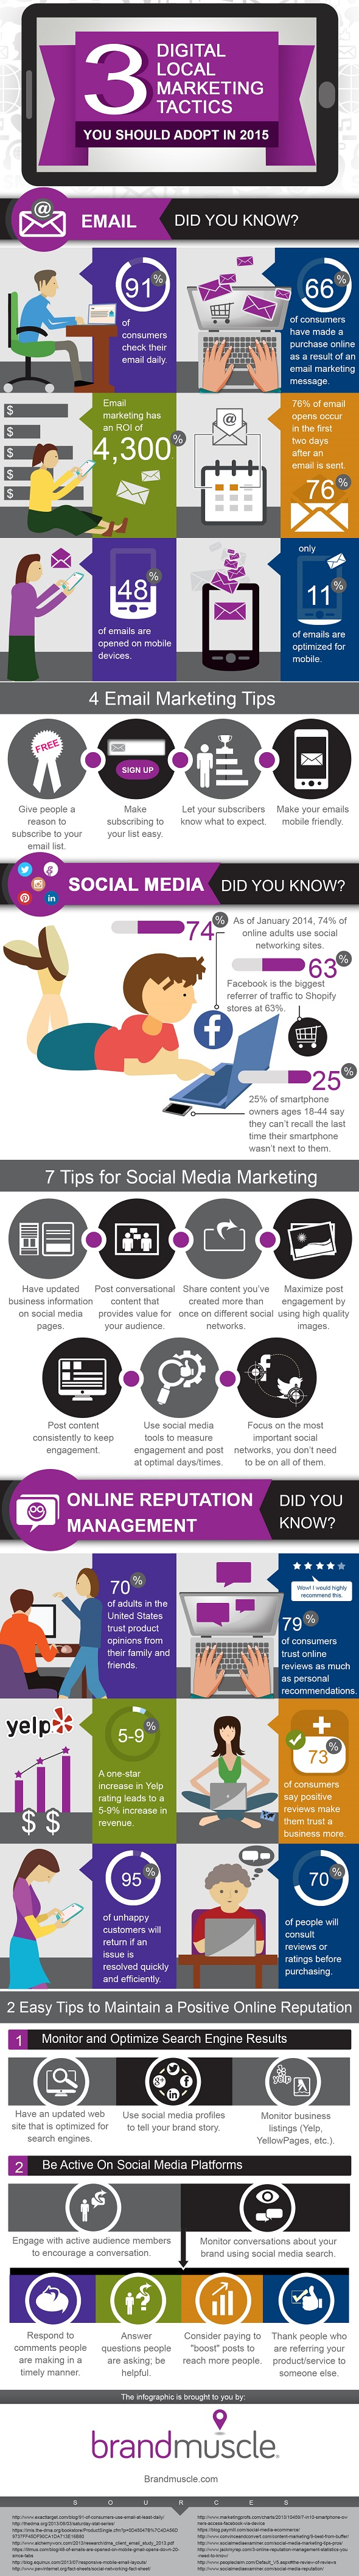 Local-Marketing-Channels-Infographic_590px